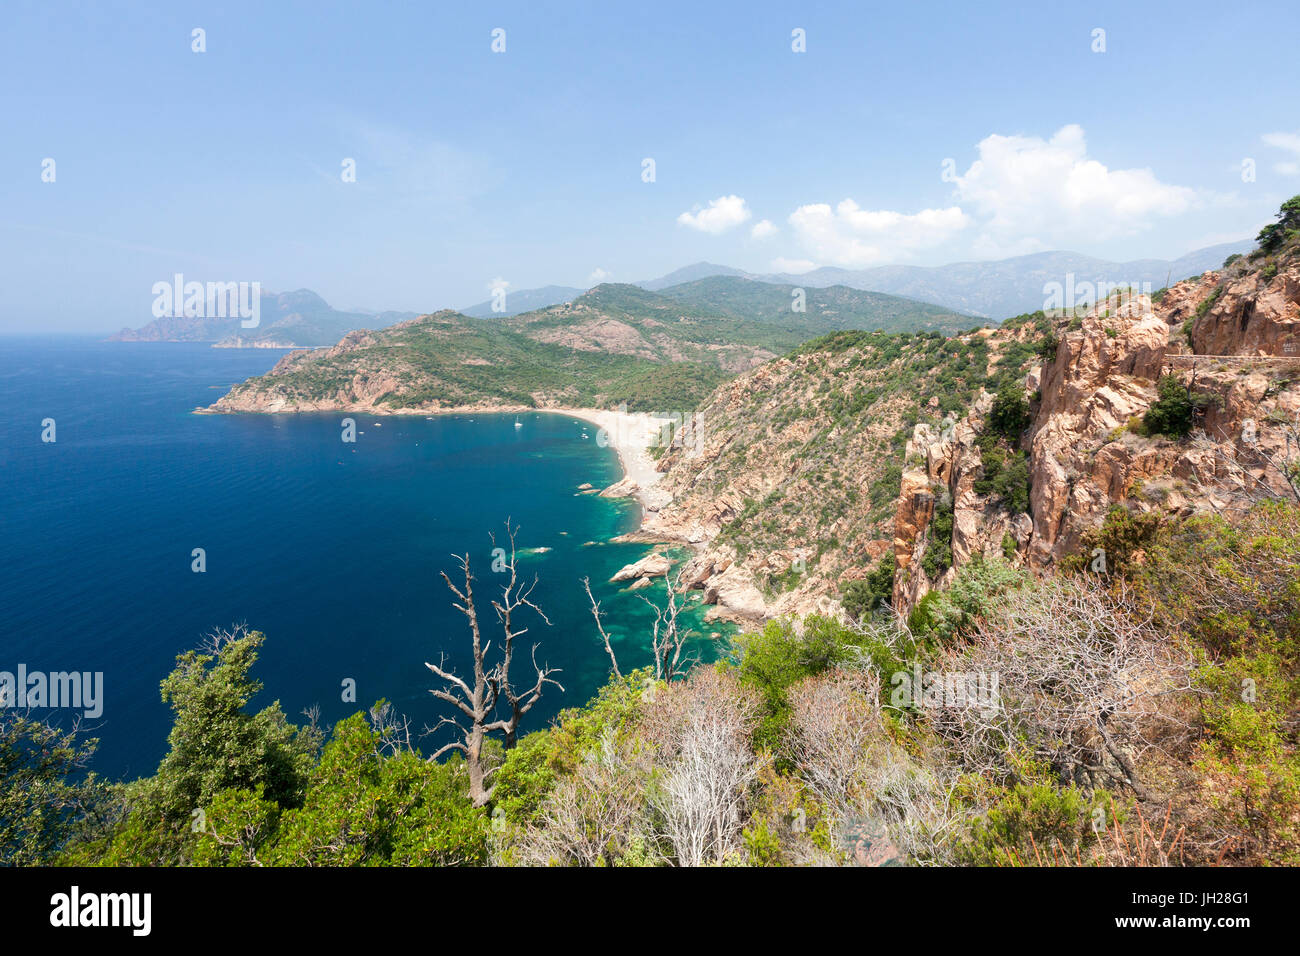 Top view of turquoise sea and sandy beach framed by green vegetation on the promontory, Porto, Southern Corsica, - Stock Image